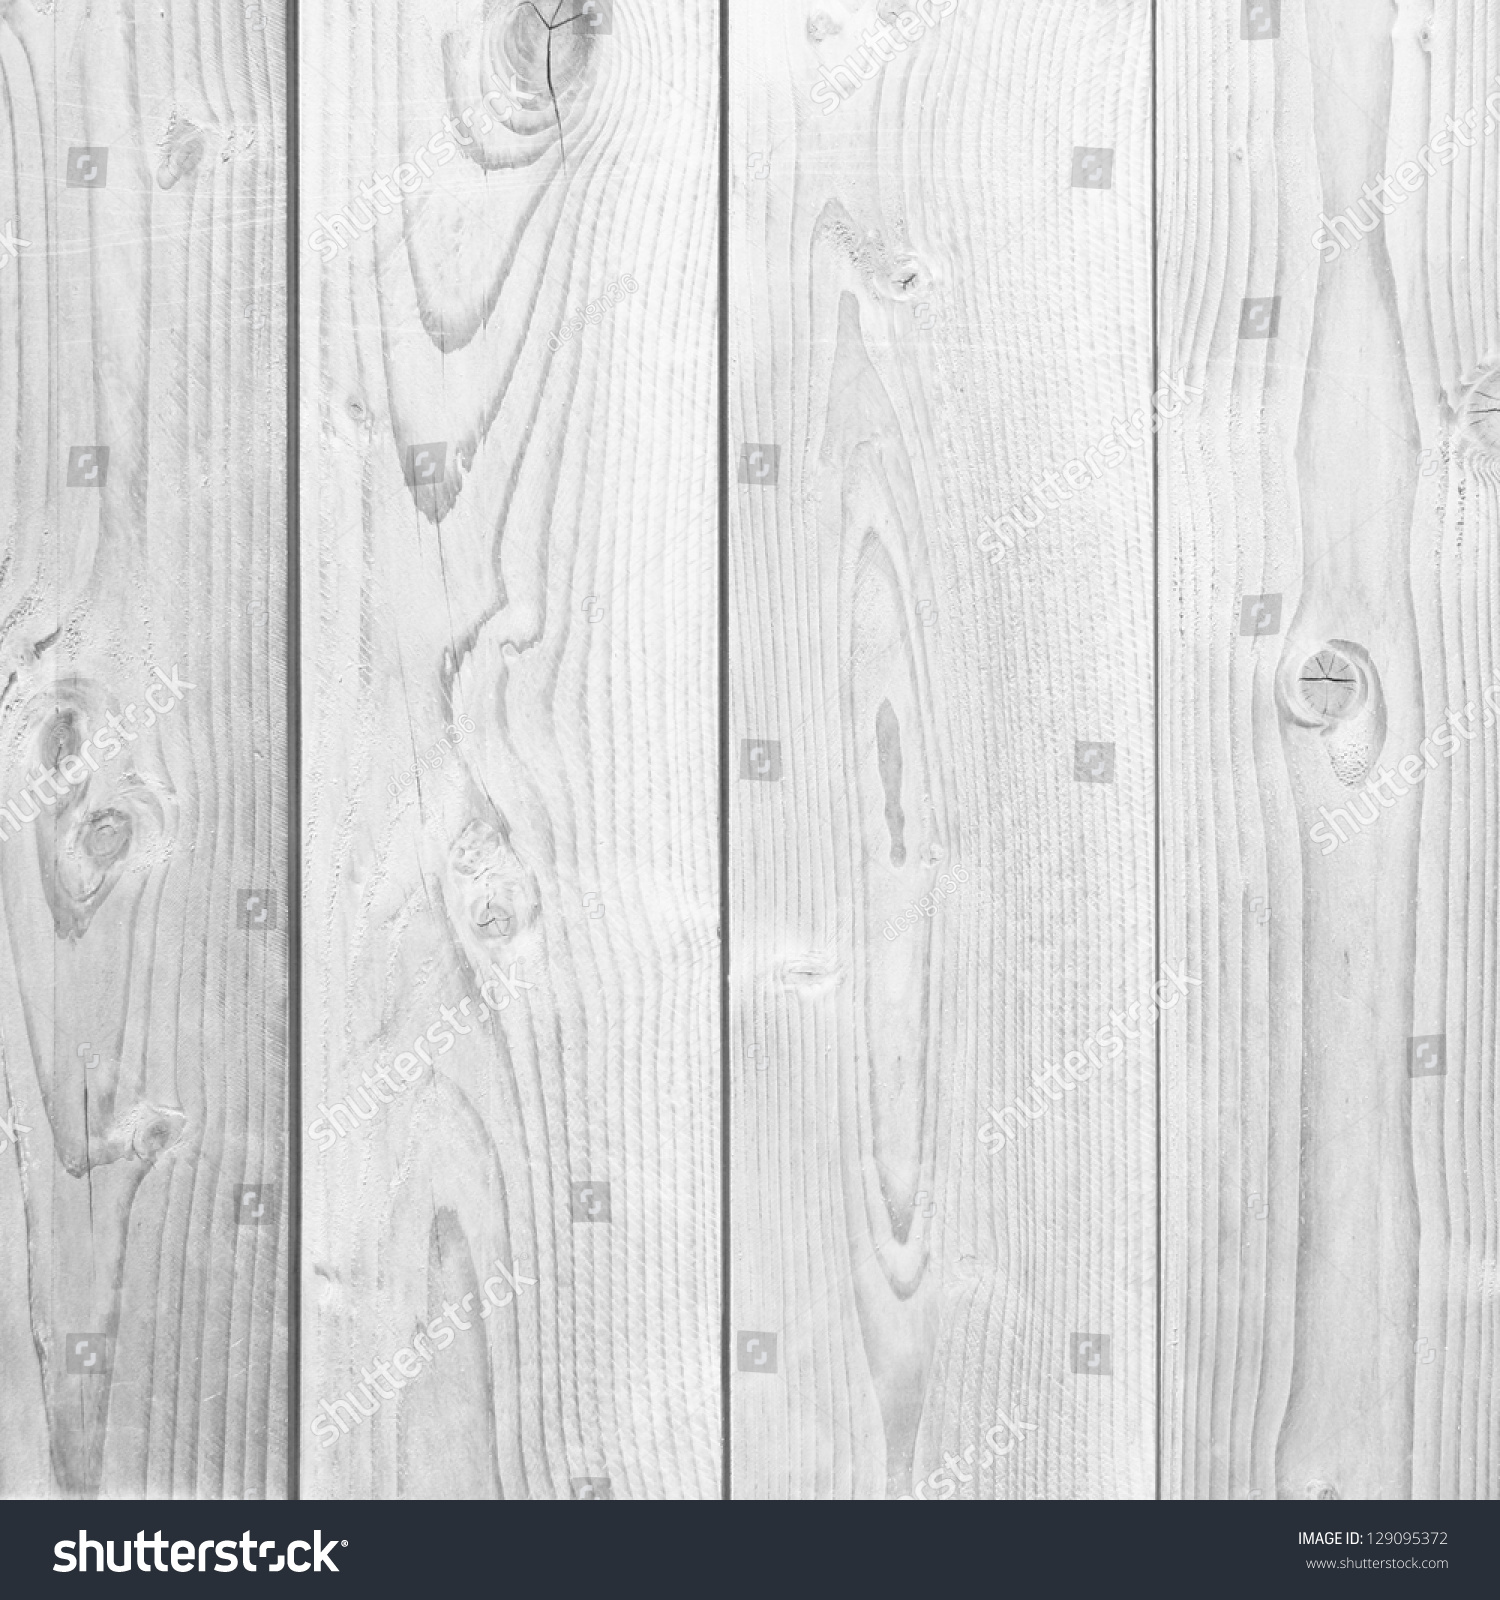 Old vintage white natural wood or wooden texture background or - Old Vintage White Natural Wood Or Wooden Texture Background Or Conceptual Backdrop Pattern Made Of Timber